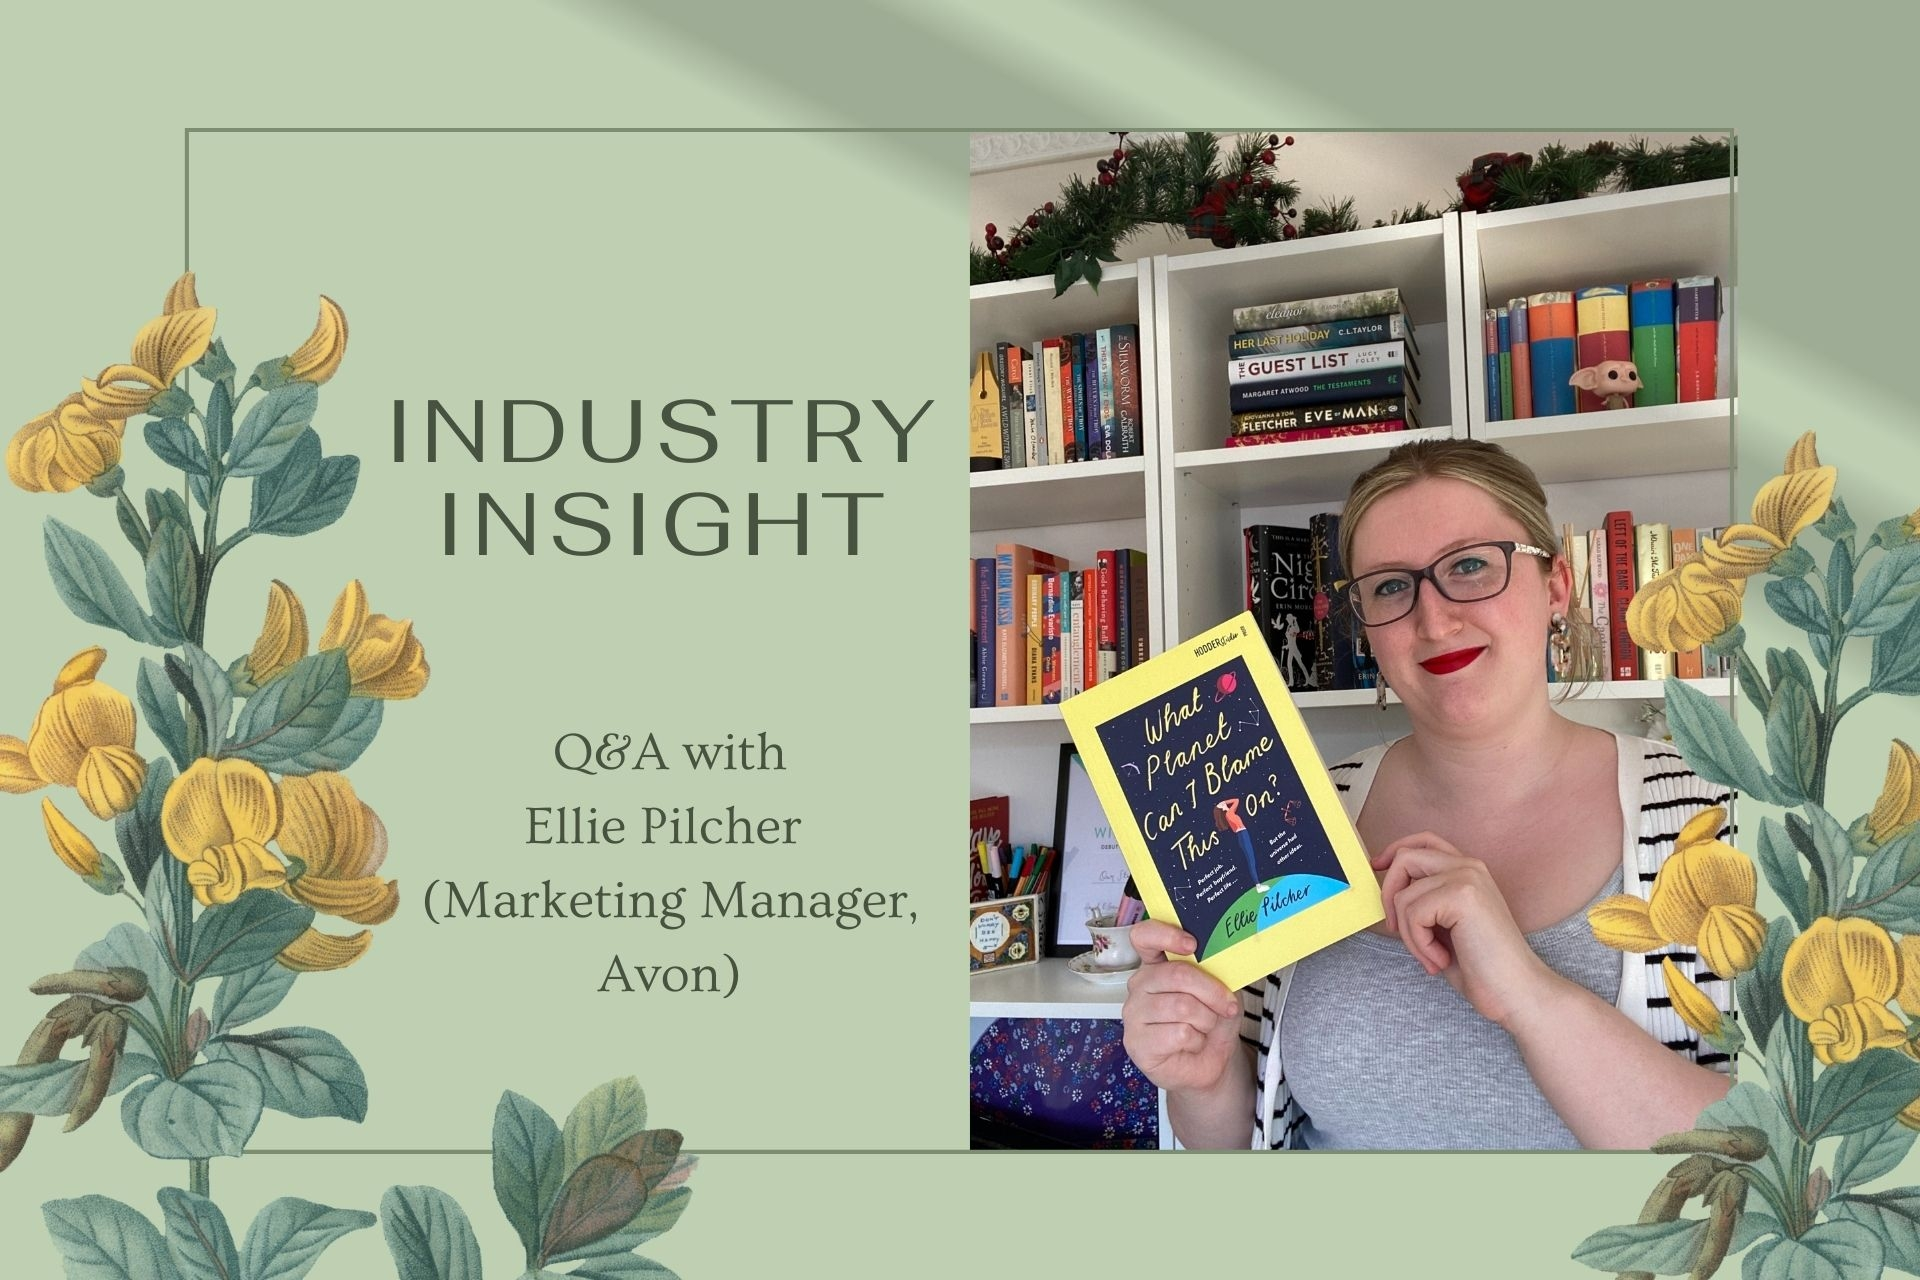 Industry Insight: Q&A with Ellie Pilcher (Marketing Manager, Avon)